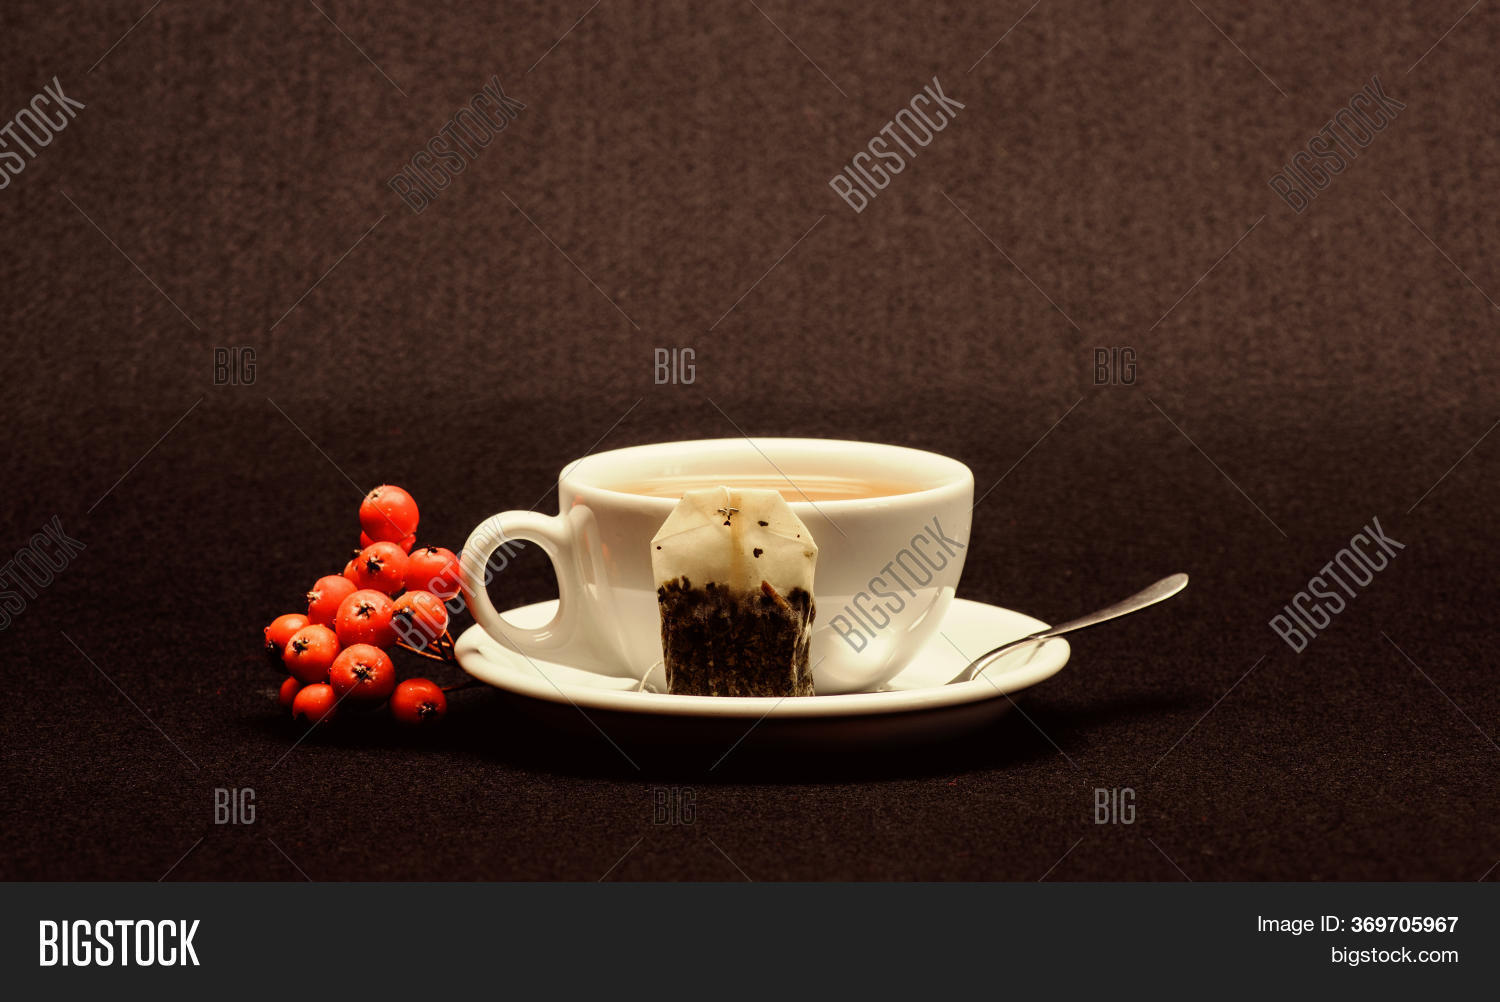 Herbal Tea Cafe Image Photo Free Trial Bigstock